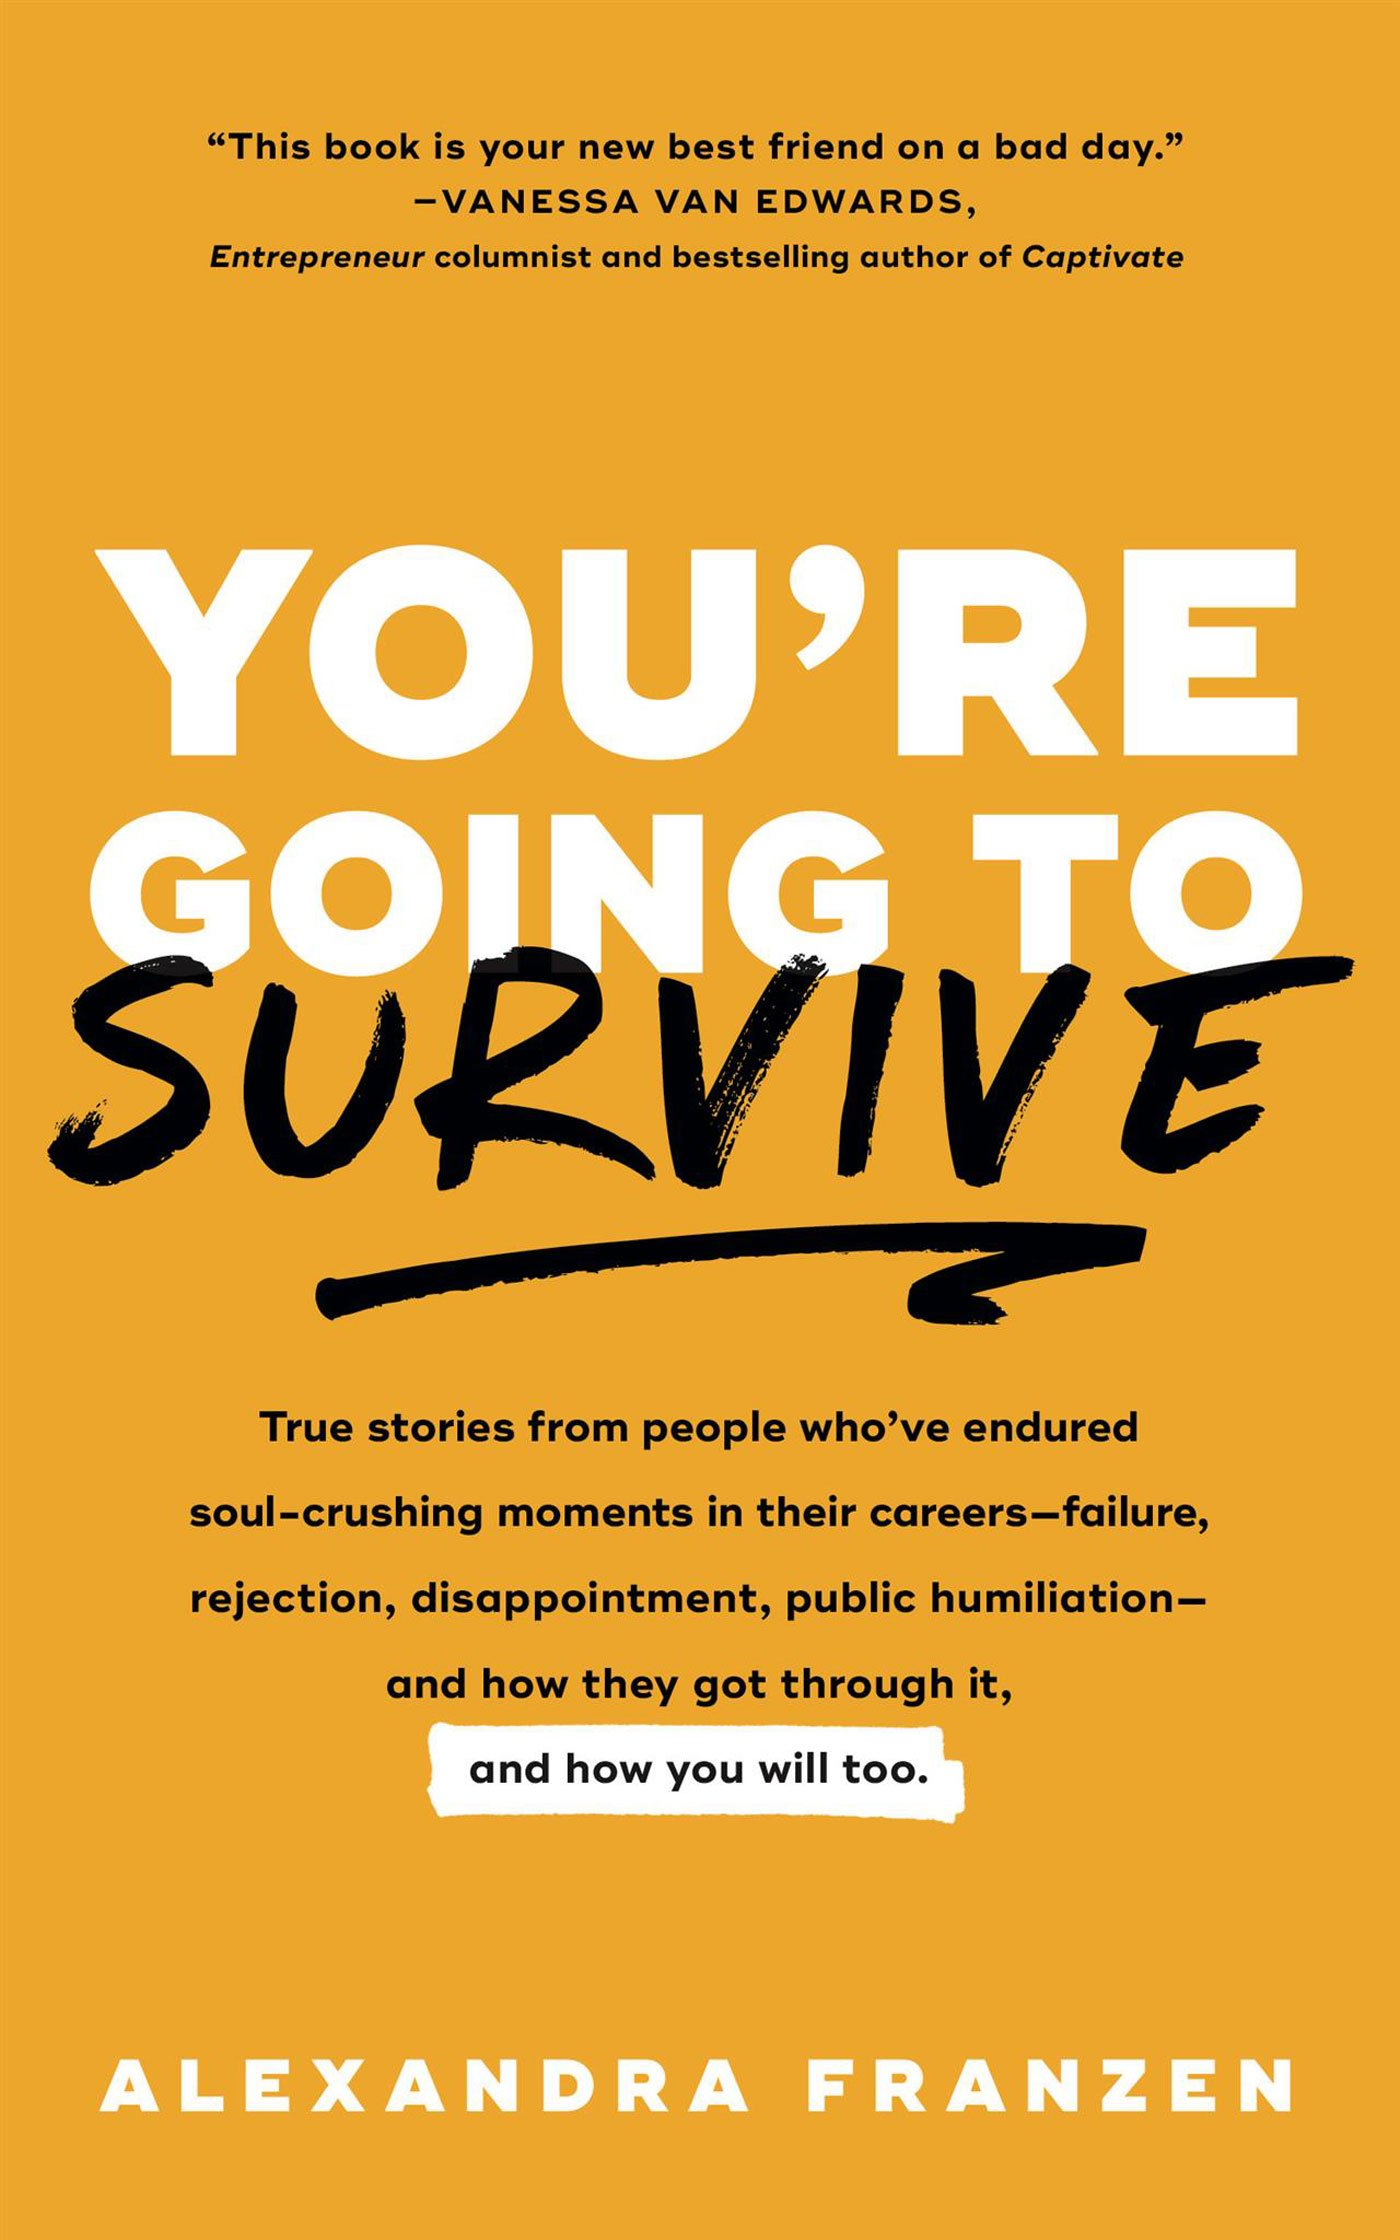 Read Online You're Going to Survive: True stories about adversity, rejection, defeat, terrible bosses, online trolls, 1-star Yelp reviews, and other soul-crushing experiences―and how to get through it pdf epub